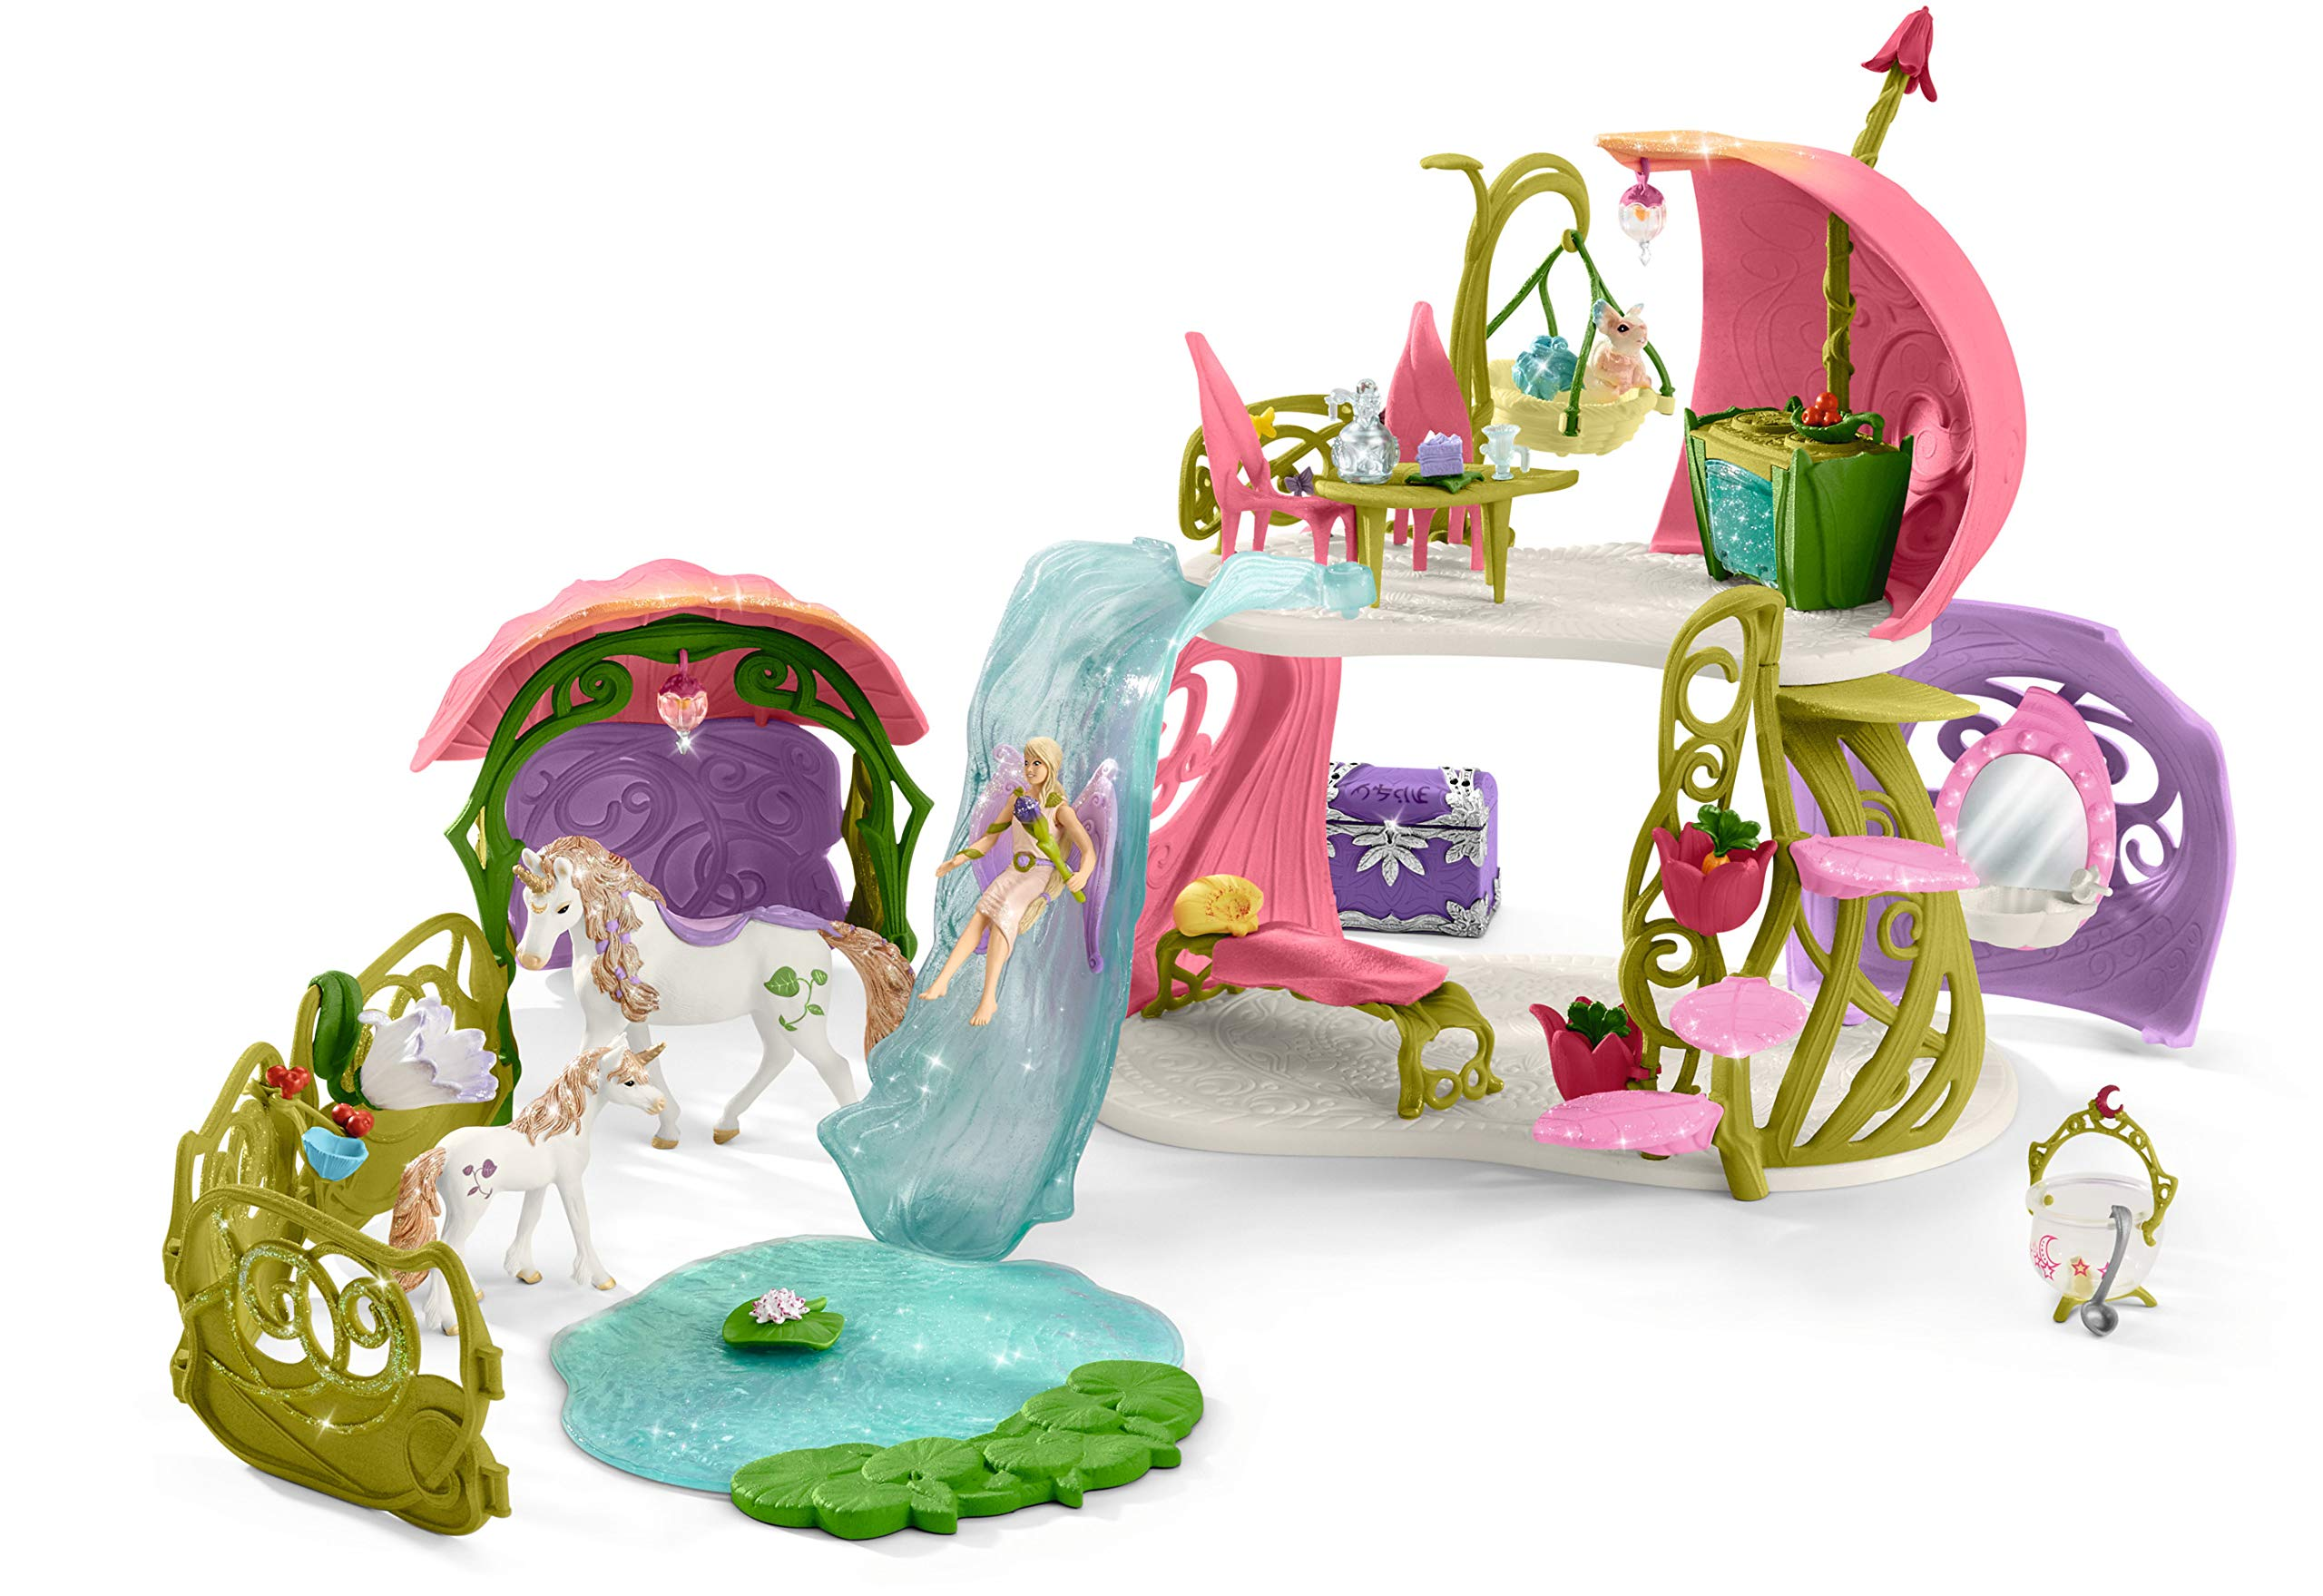 Schleich Glittering Flower House with Unicorns, Lake and Stable, Multicolor by Schleich (Image #1)